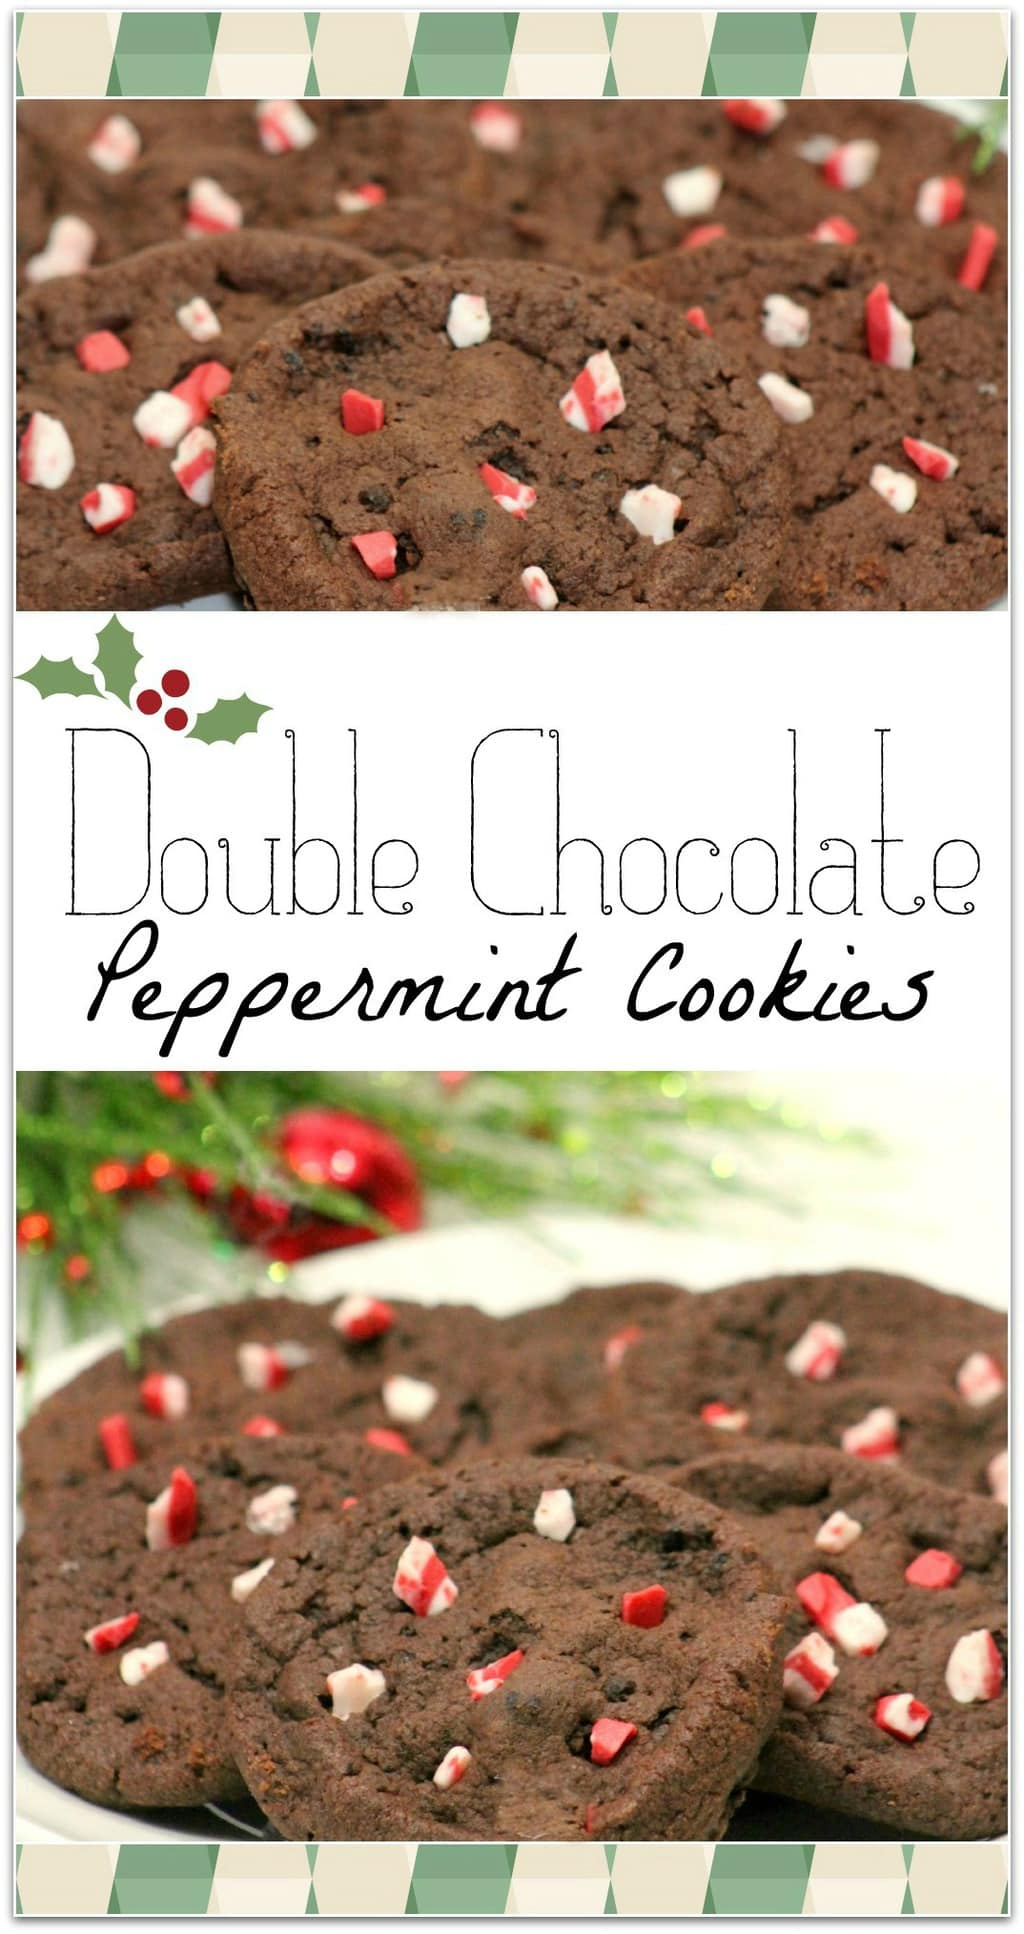 These Double Chocolate Peppermint Crunch Cookies are such and easy dessert recipe, and you won't find anyone else bringing them to the cookie exchange! So full chocolate with bits of peppermint, this is one of my favorite recipes for Christmas and the winter holidays!